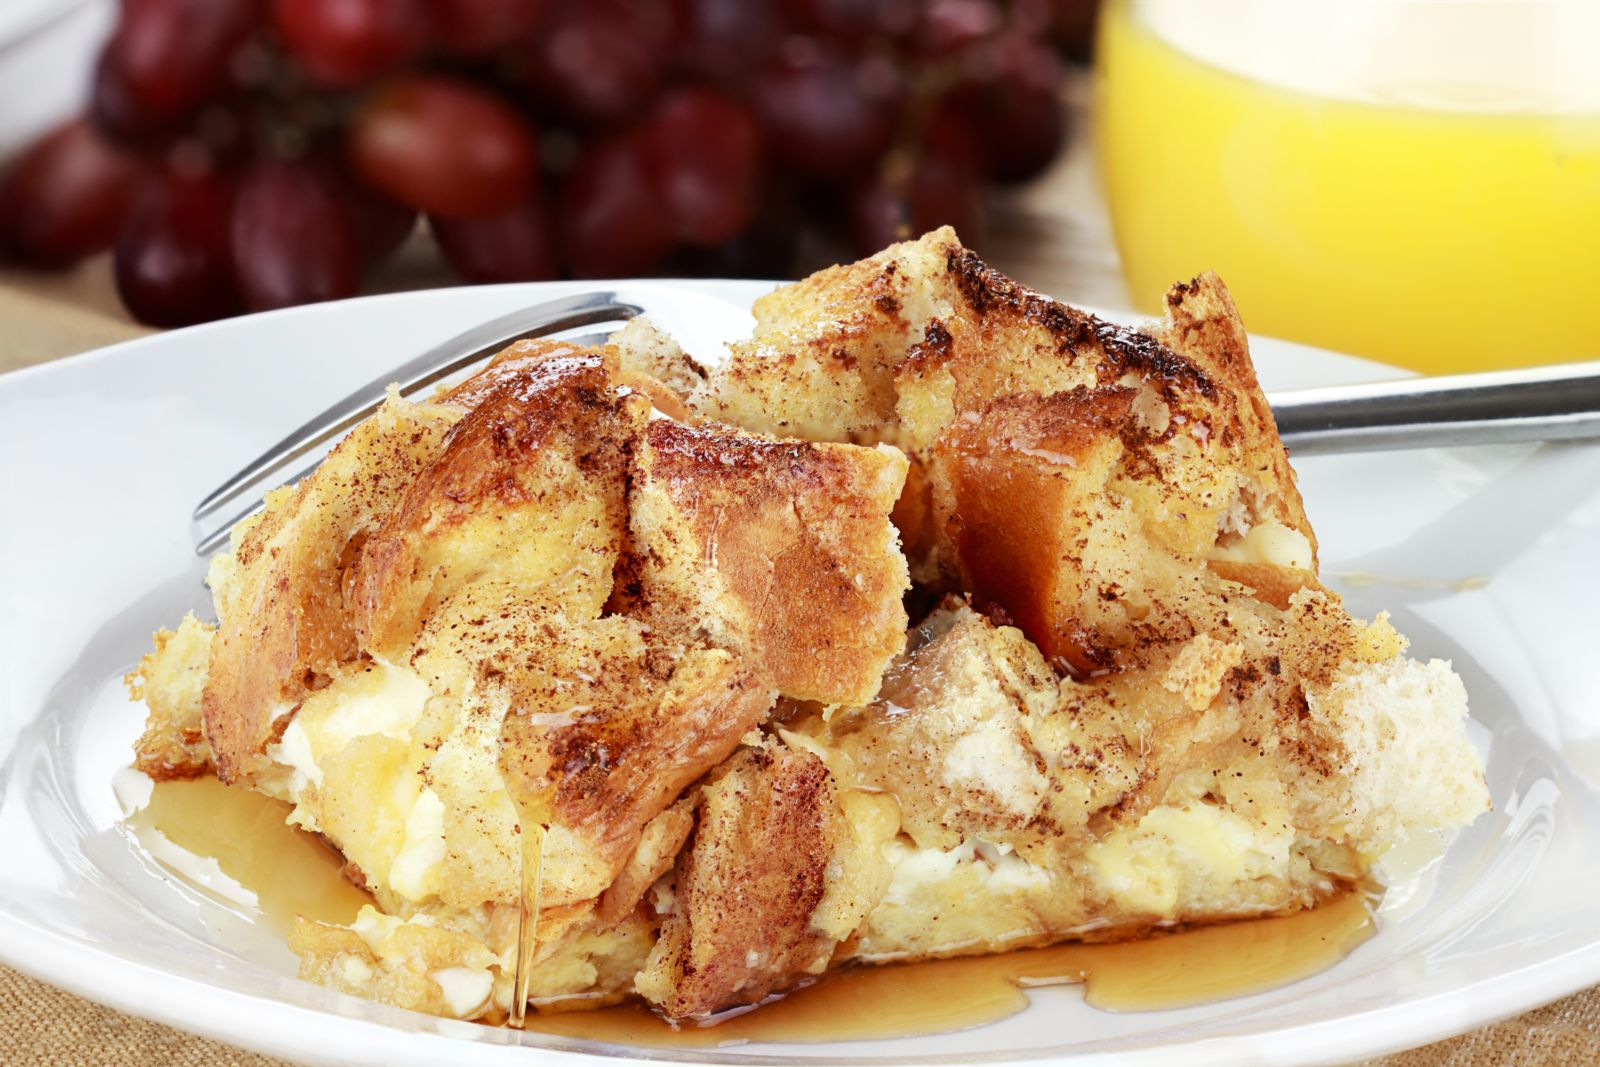 This French Toast casserole has a strong (and diabetes friendly) brunch game